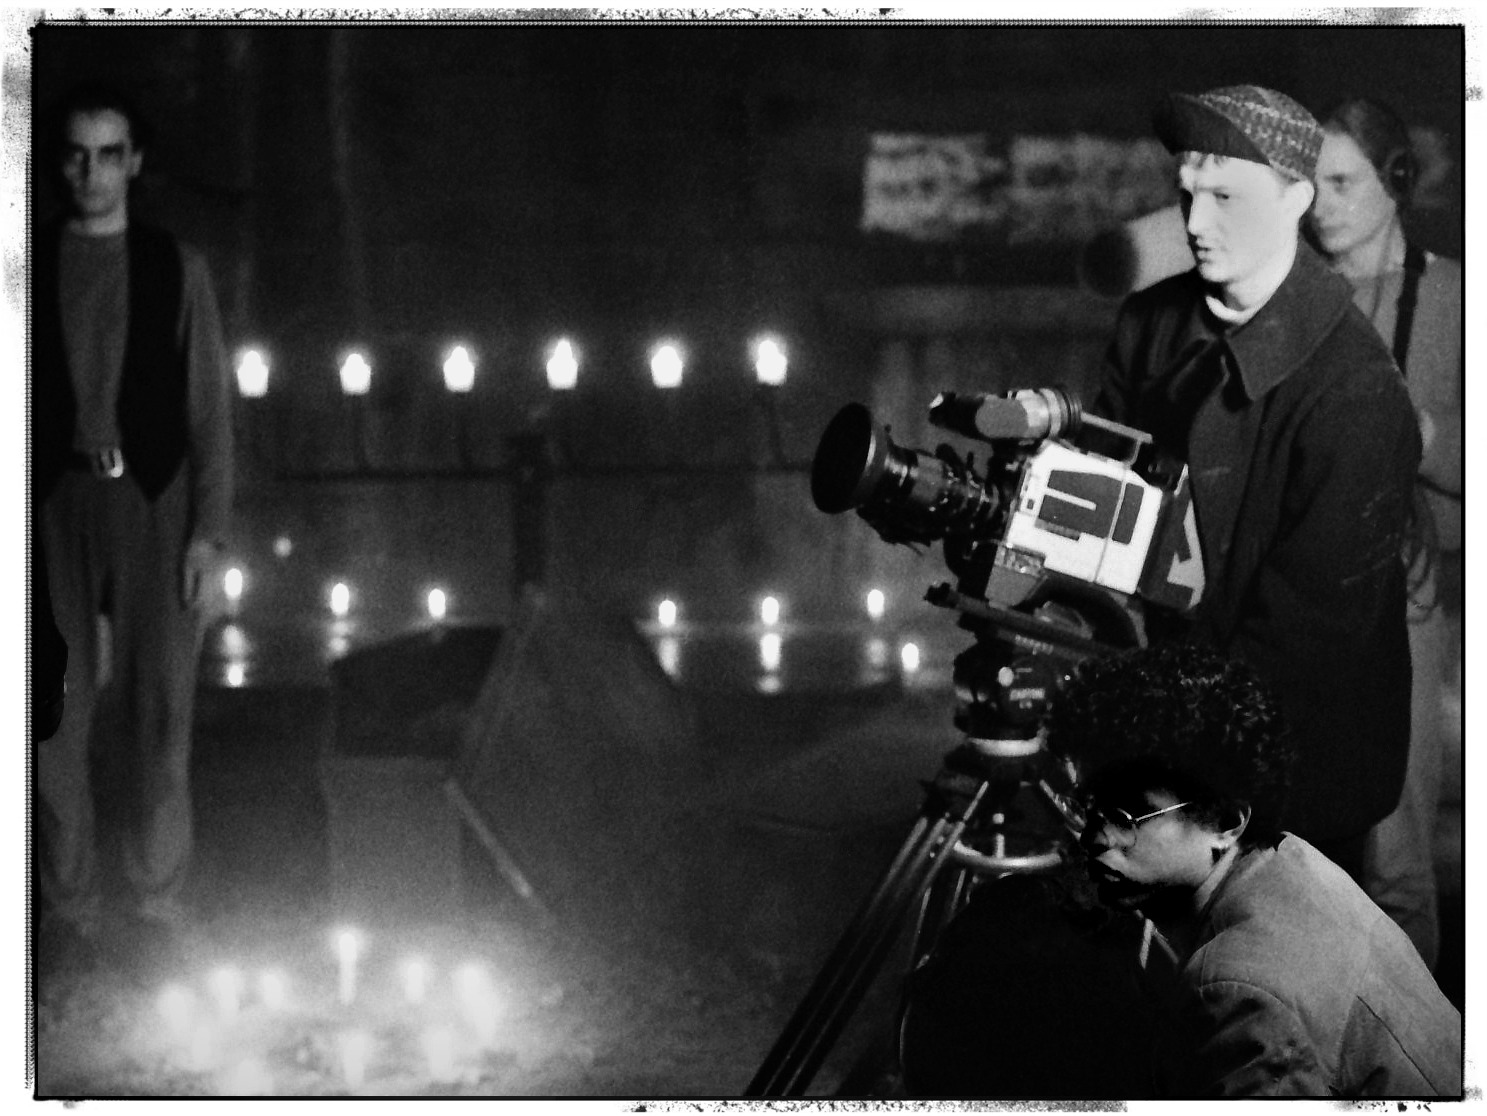 The Vampire ... and director Bryn Tilly, camera operator Martyn Roberts, and sound recordist Daniel McLaren